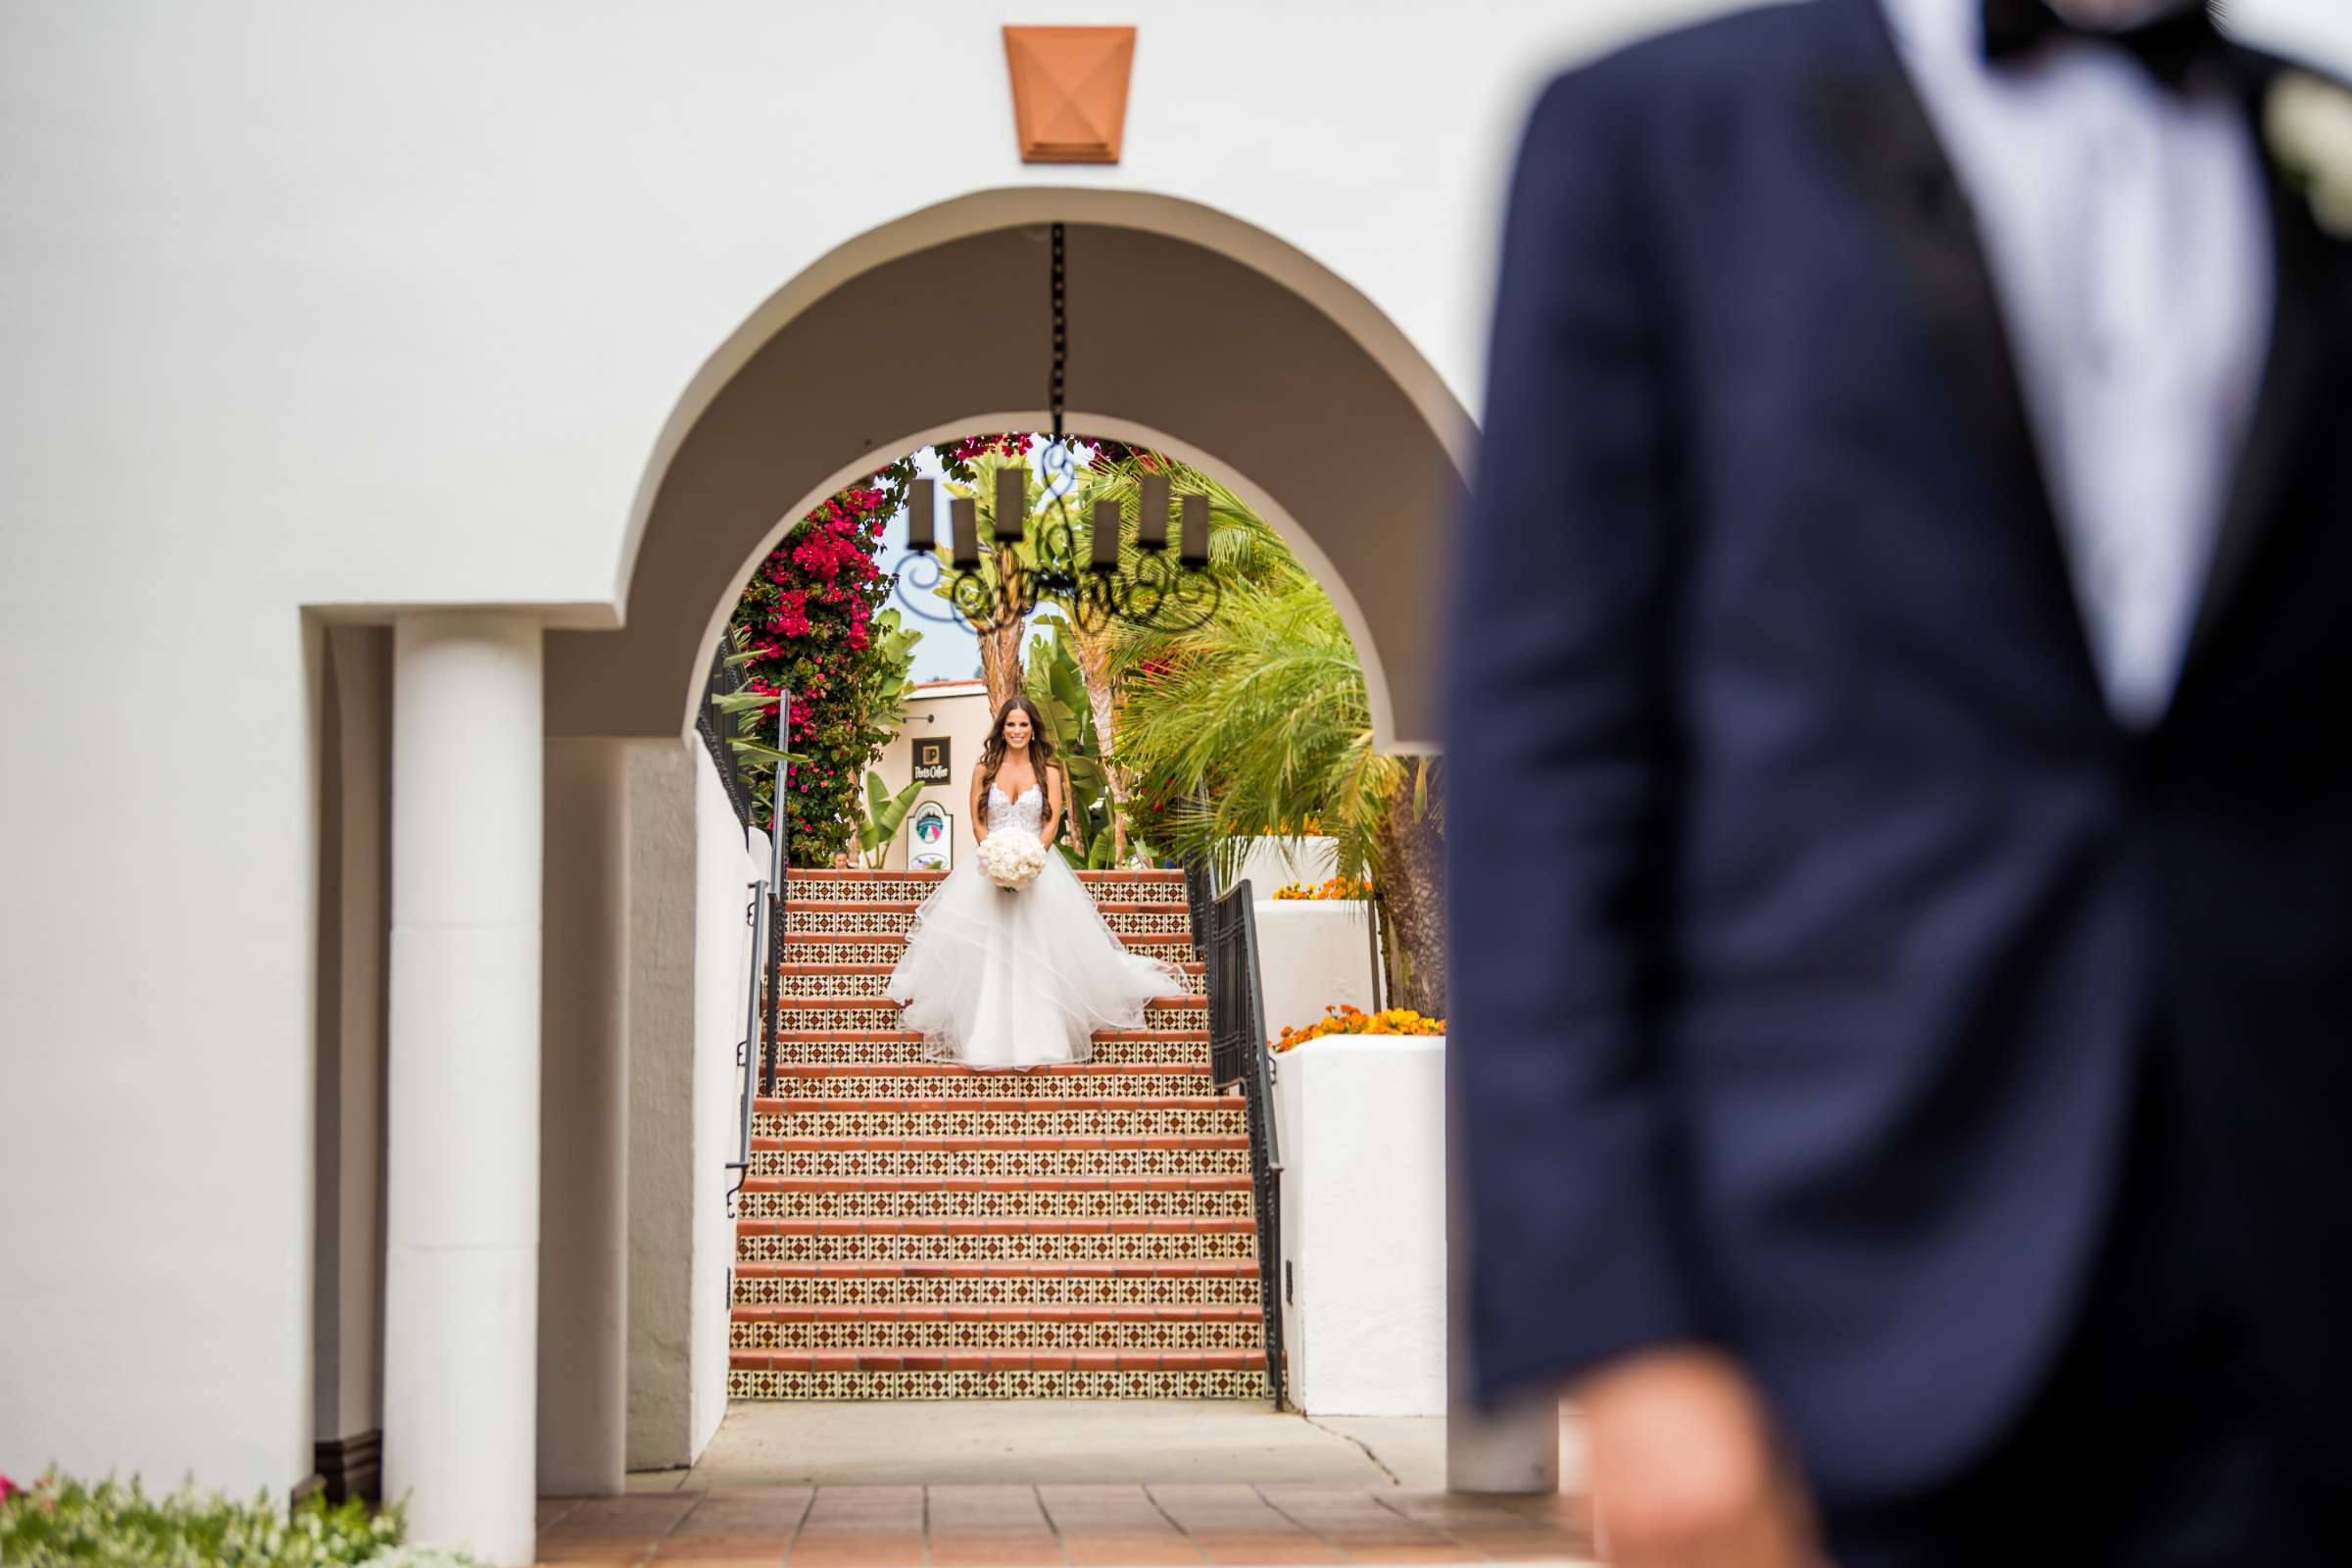 Omni La Costa Resort & Spa Wedding coordinated by Fabulous Two Design, Kristyn and Mani Wedding Photo #71 by True Photography